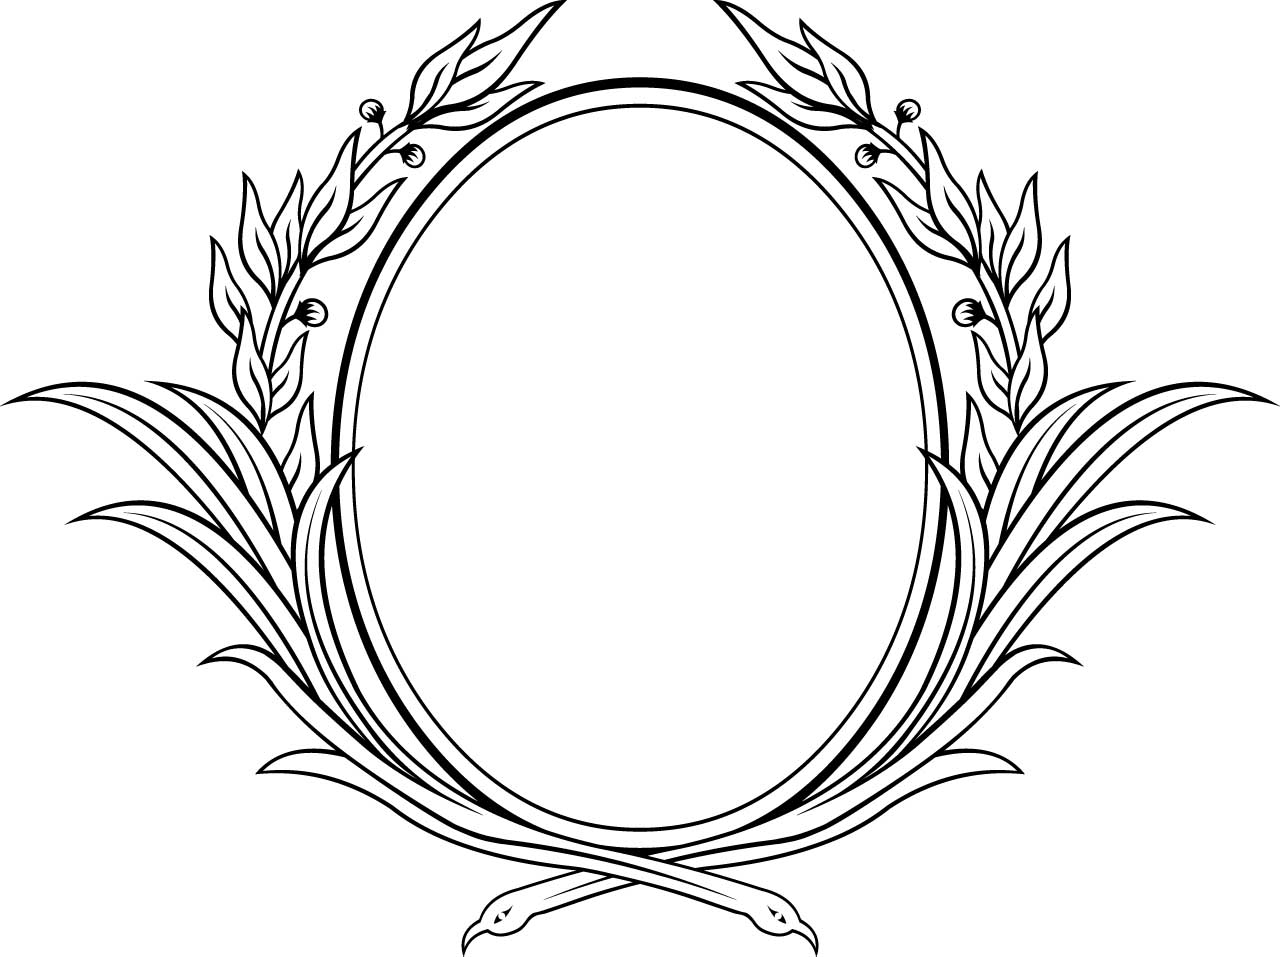 vector free download photo frame - photo #13